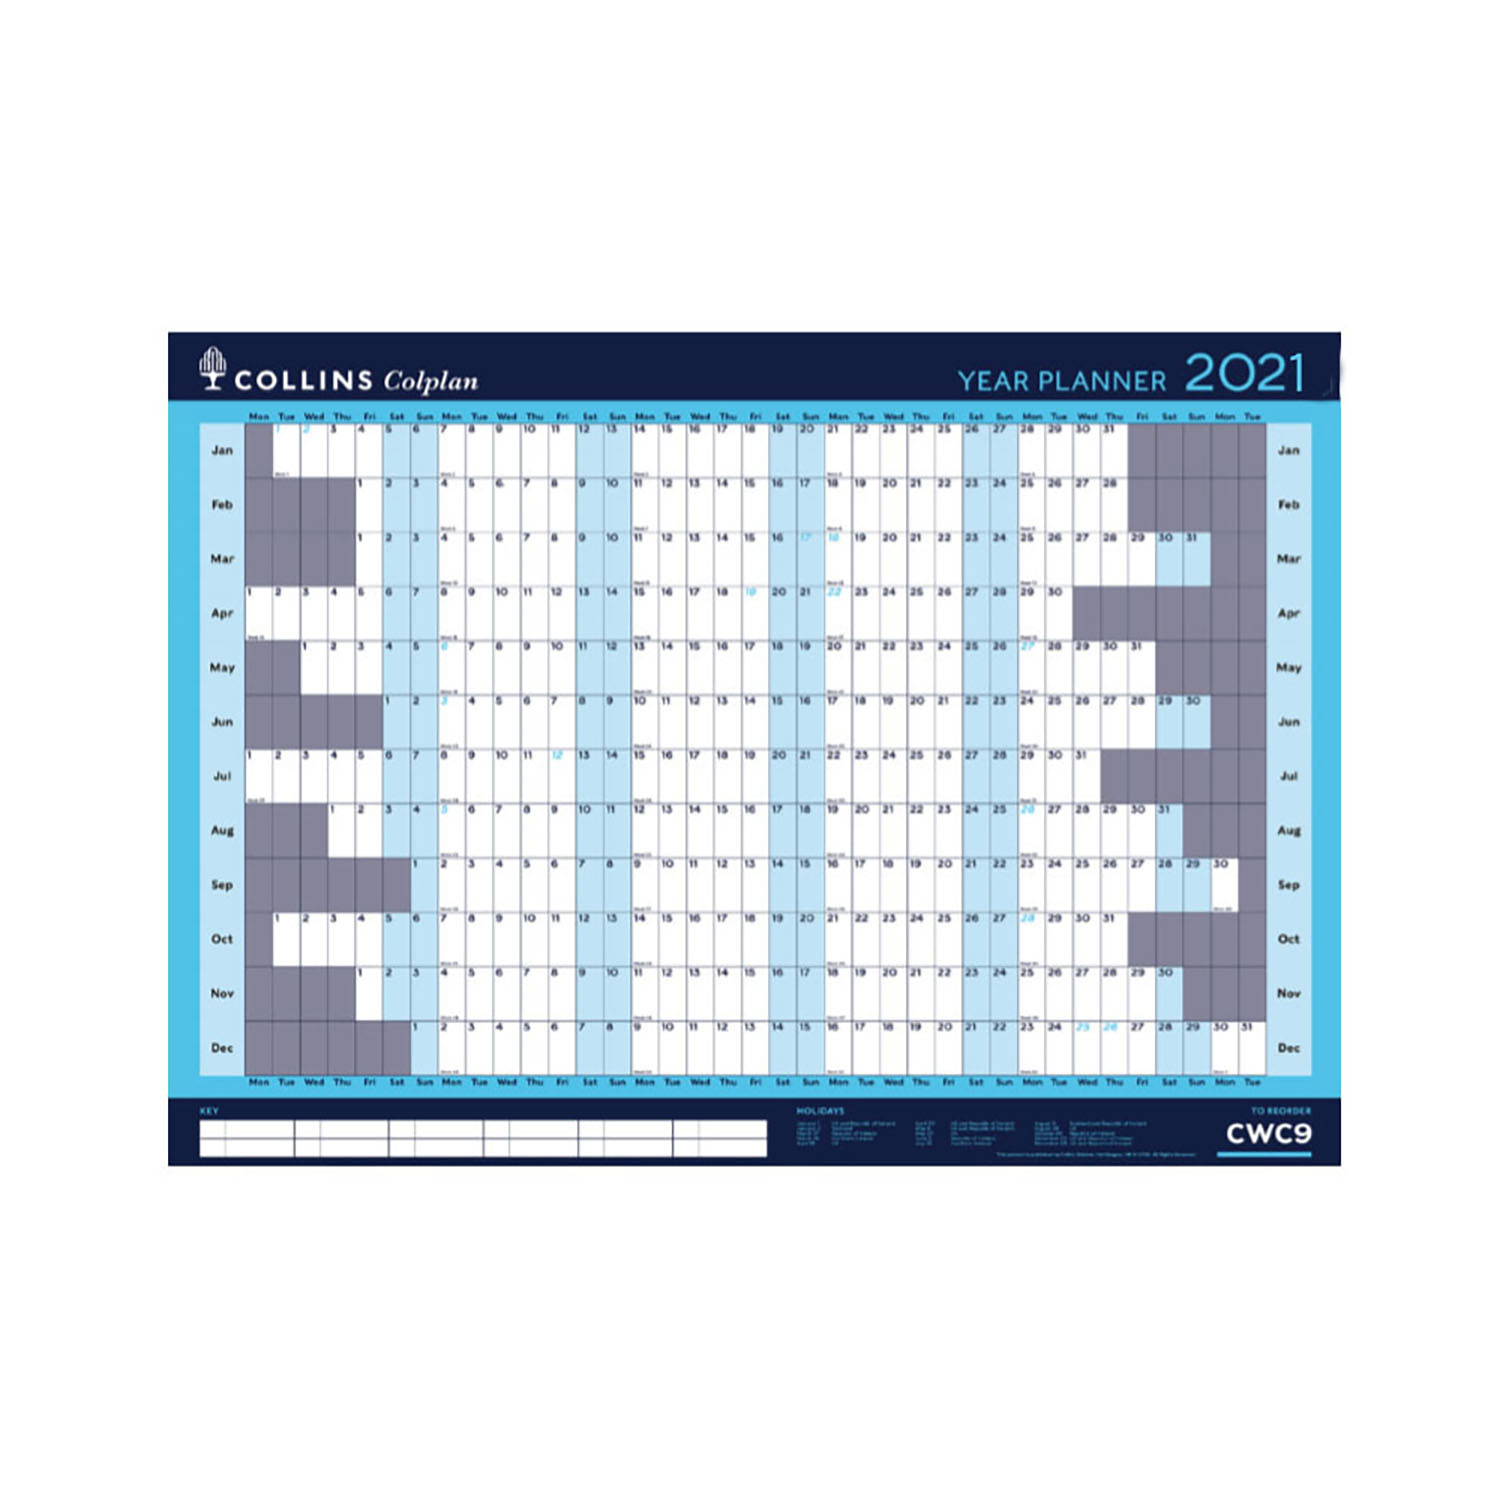 Planners Collins Colplan 2021 Year Wall Planner Landscape Unmounted A1 594x840mm Blue Ref CWC9 2021